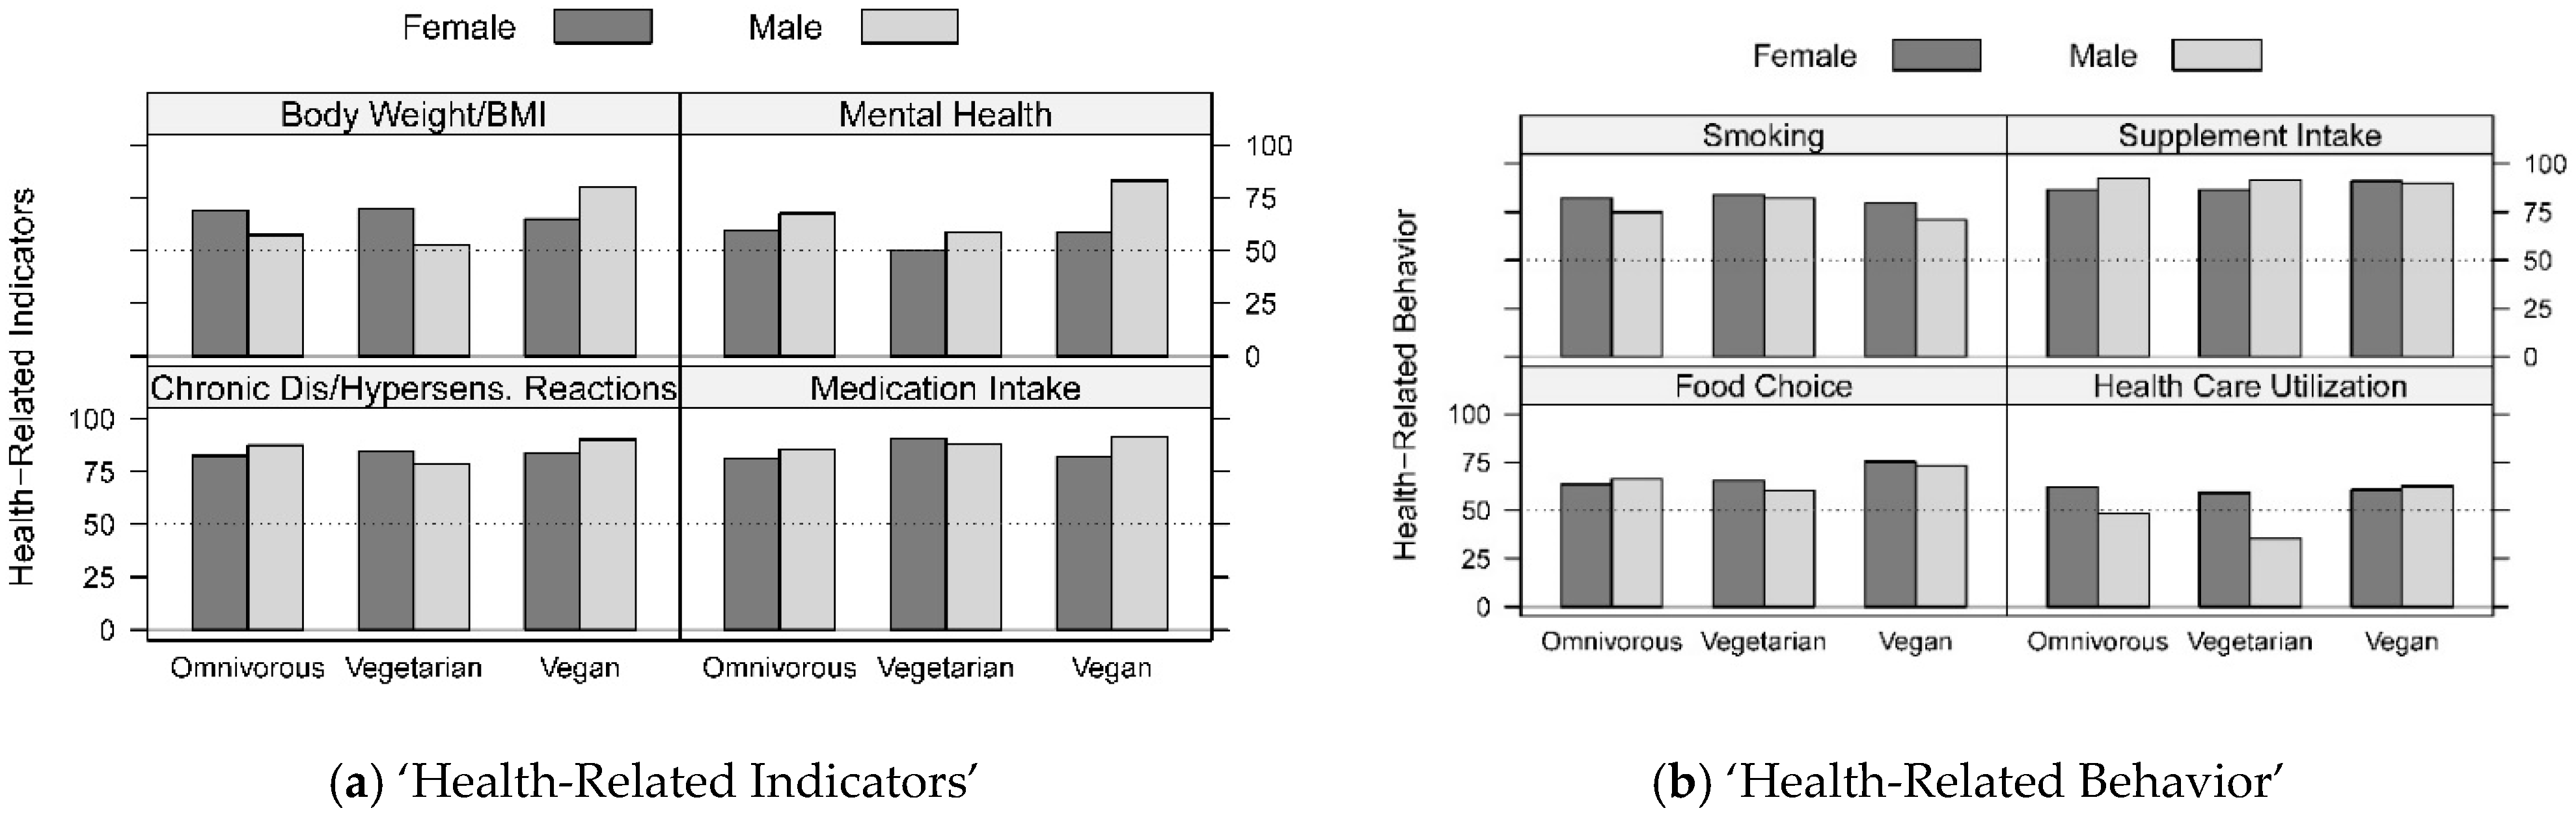 Nutrients Free Full Text Health Status Of Female And Male Vegetarian And Vegan Endurance Runners Compared To Omnivores Results From The Nurmi Study Step 2 Html